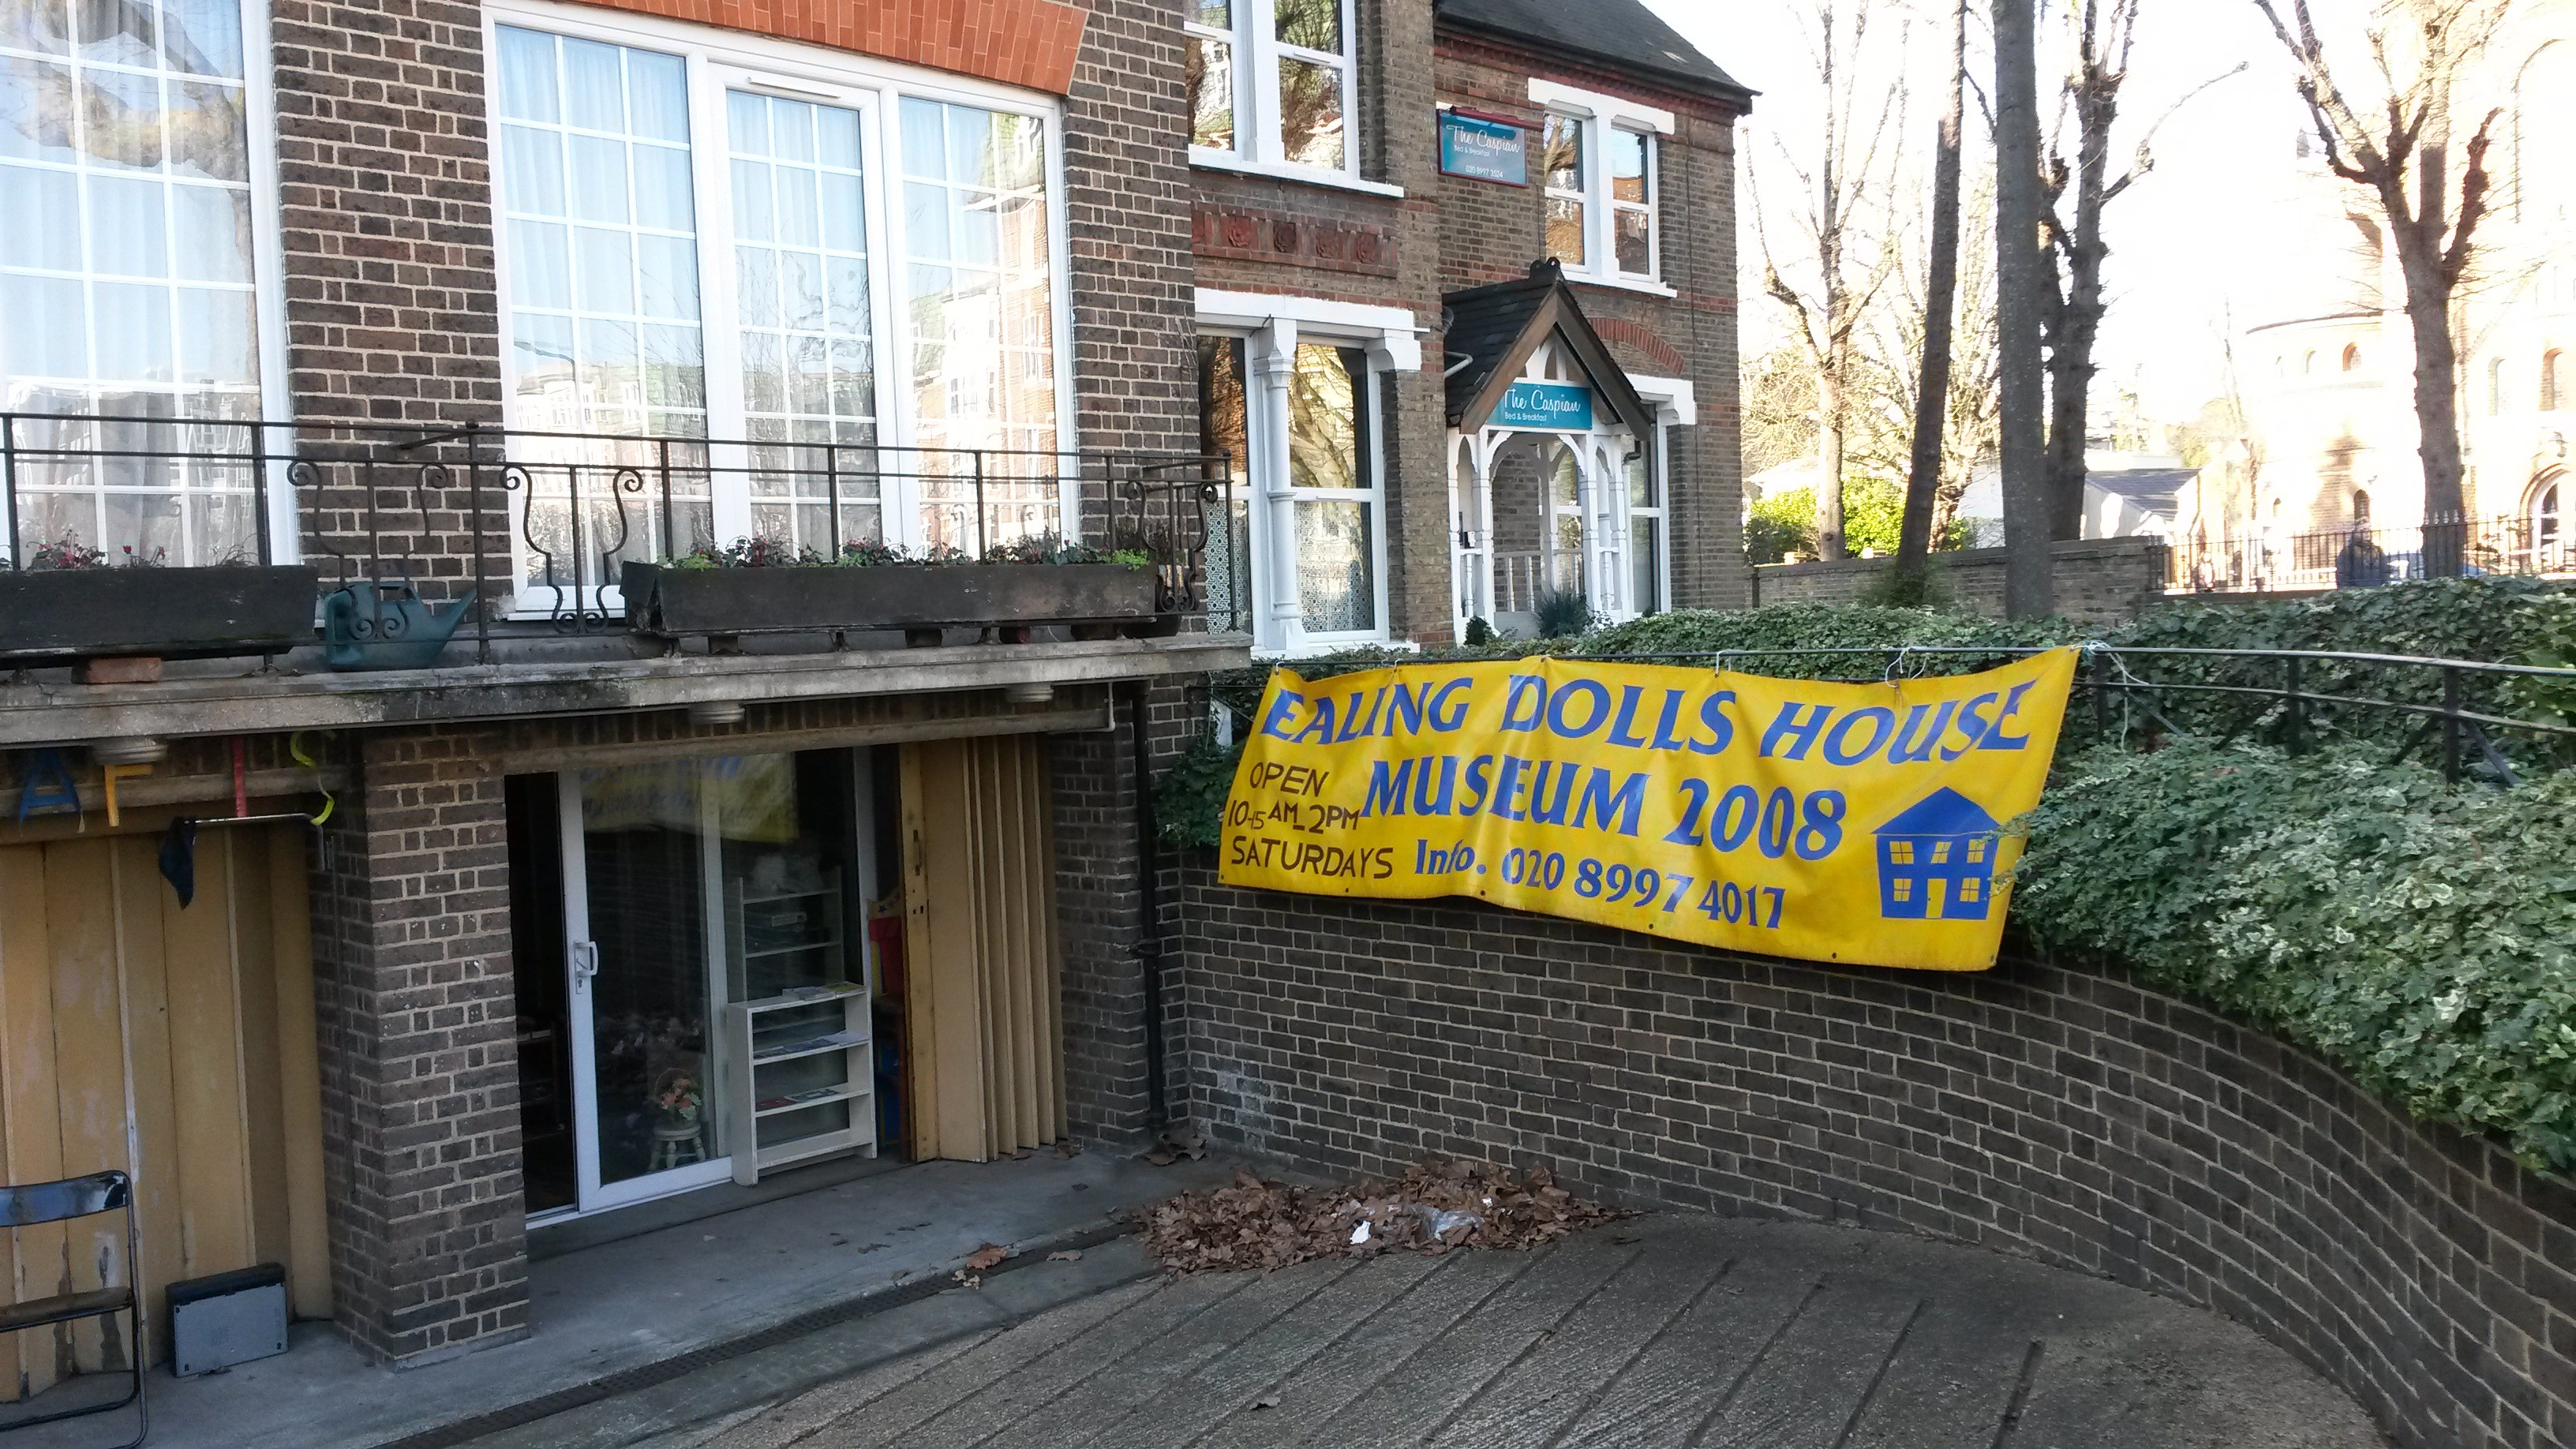 Ealing Dolls House Museum